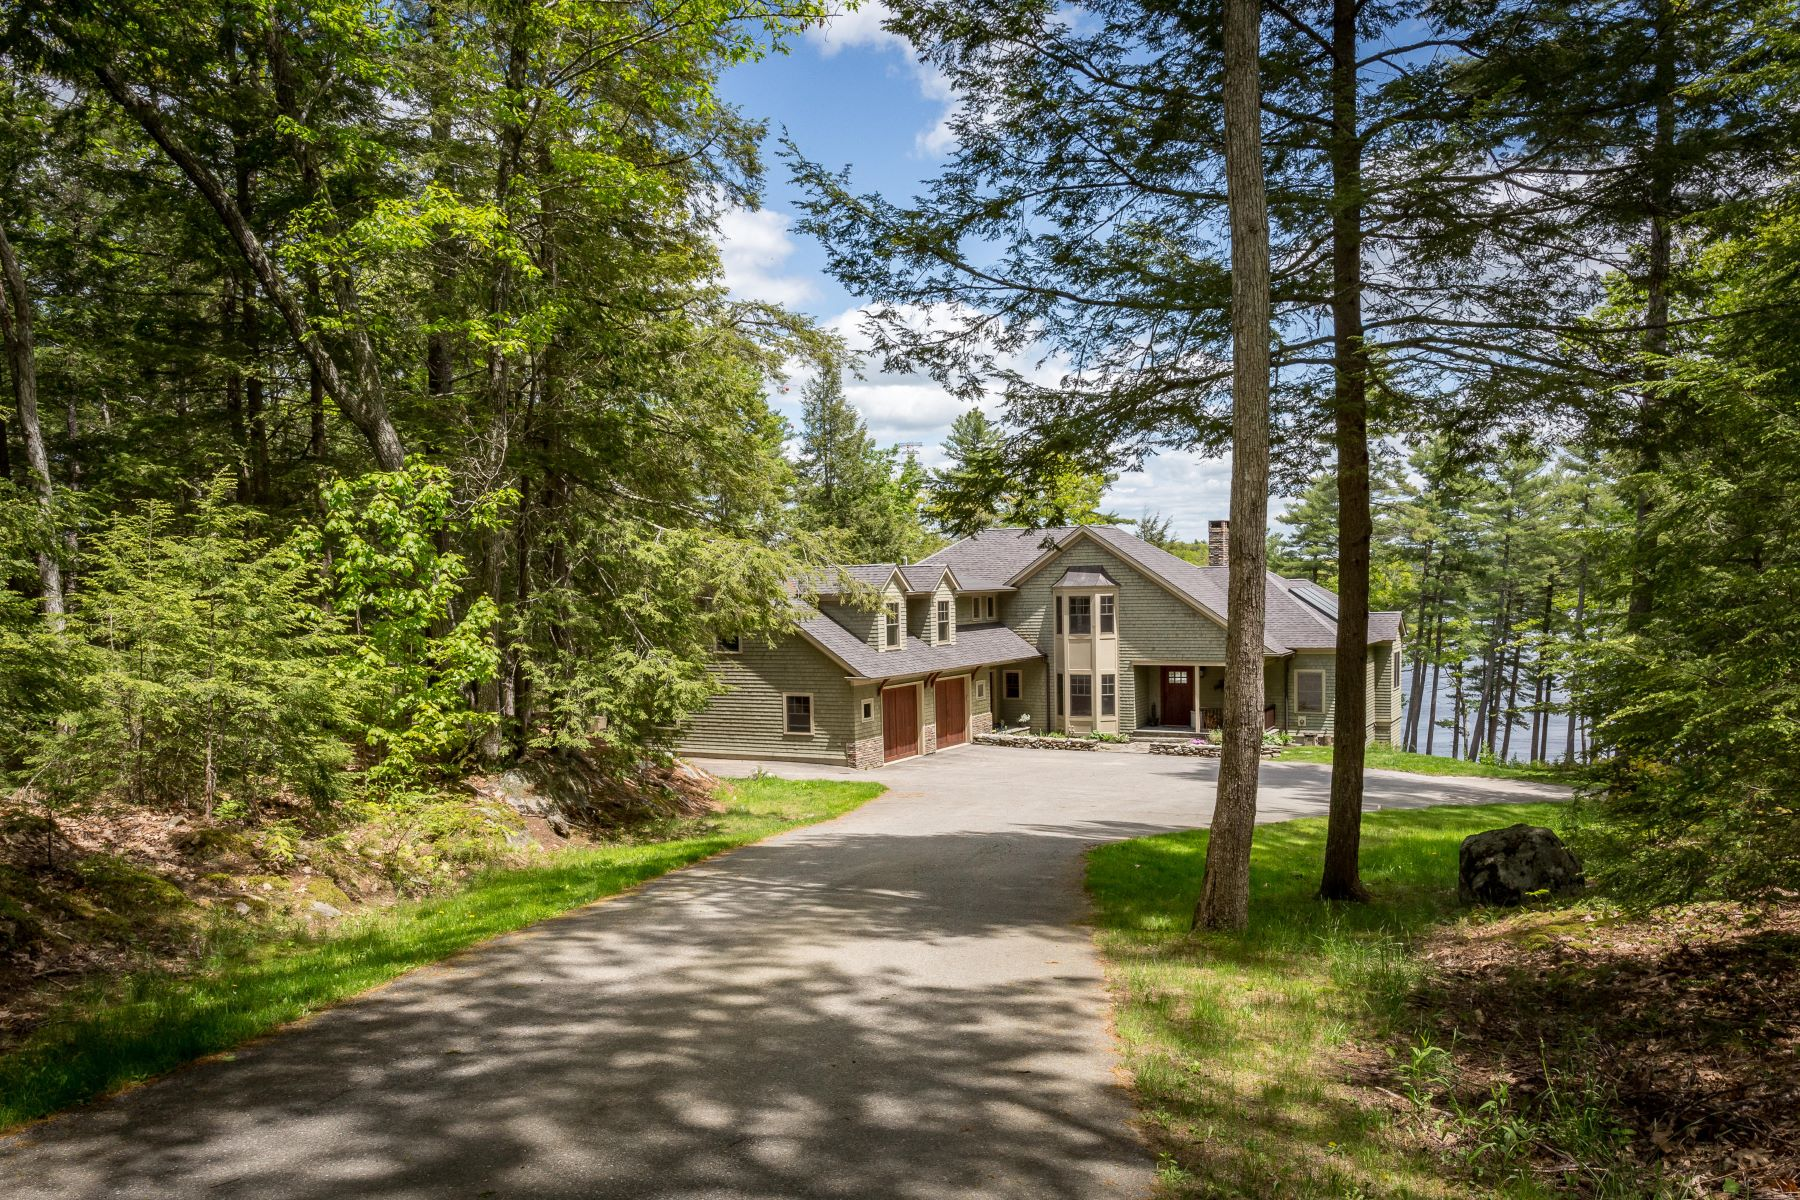 Single Family Homes for Sale at 51 West Chops Point Road Bath, Maine 04530 United States